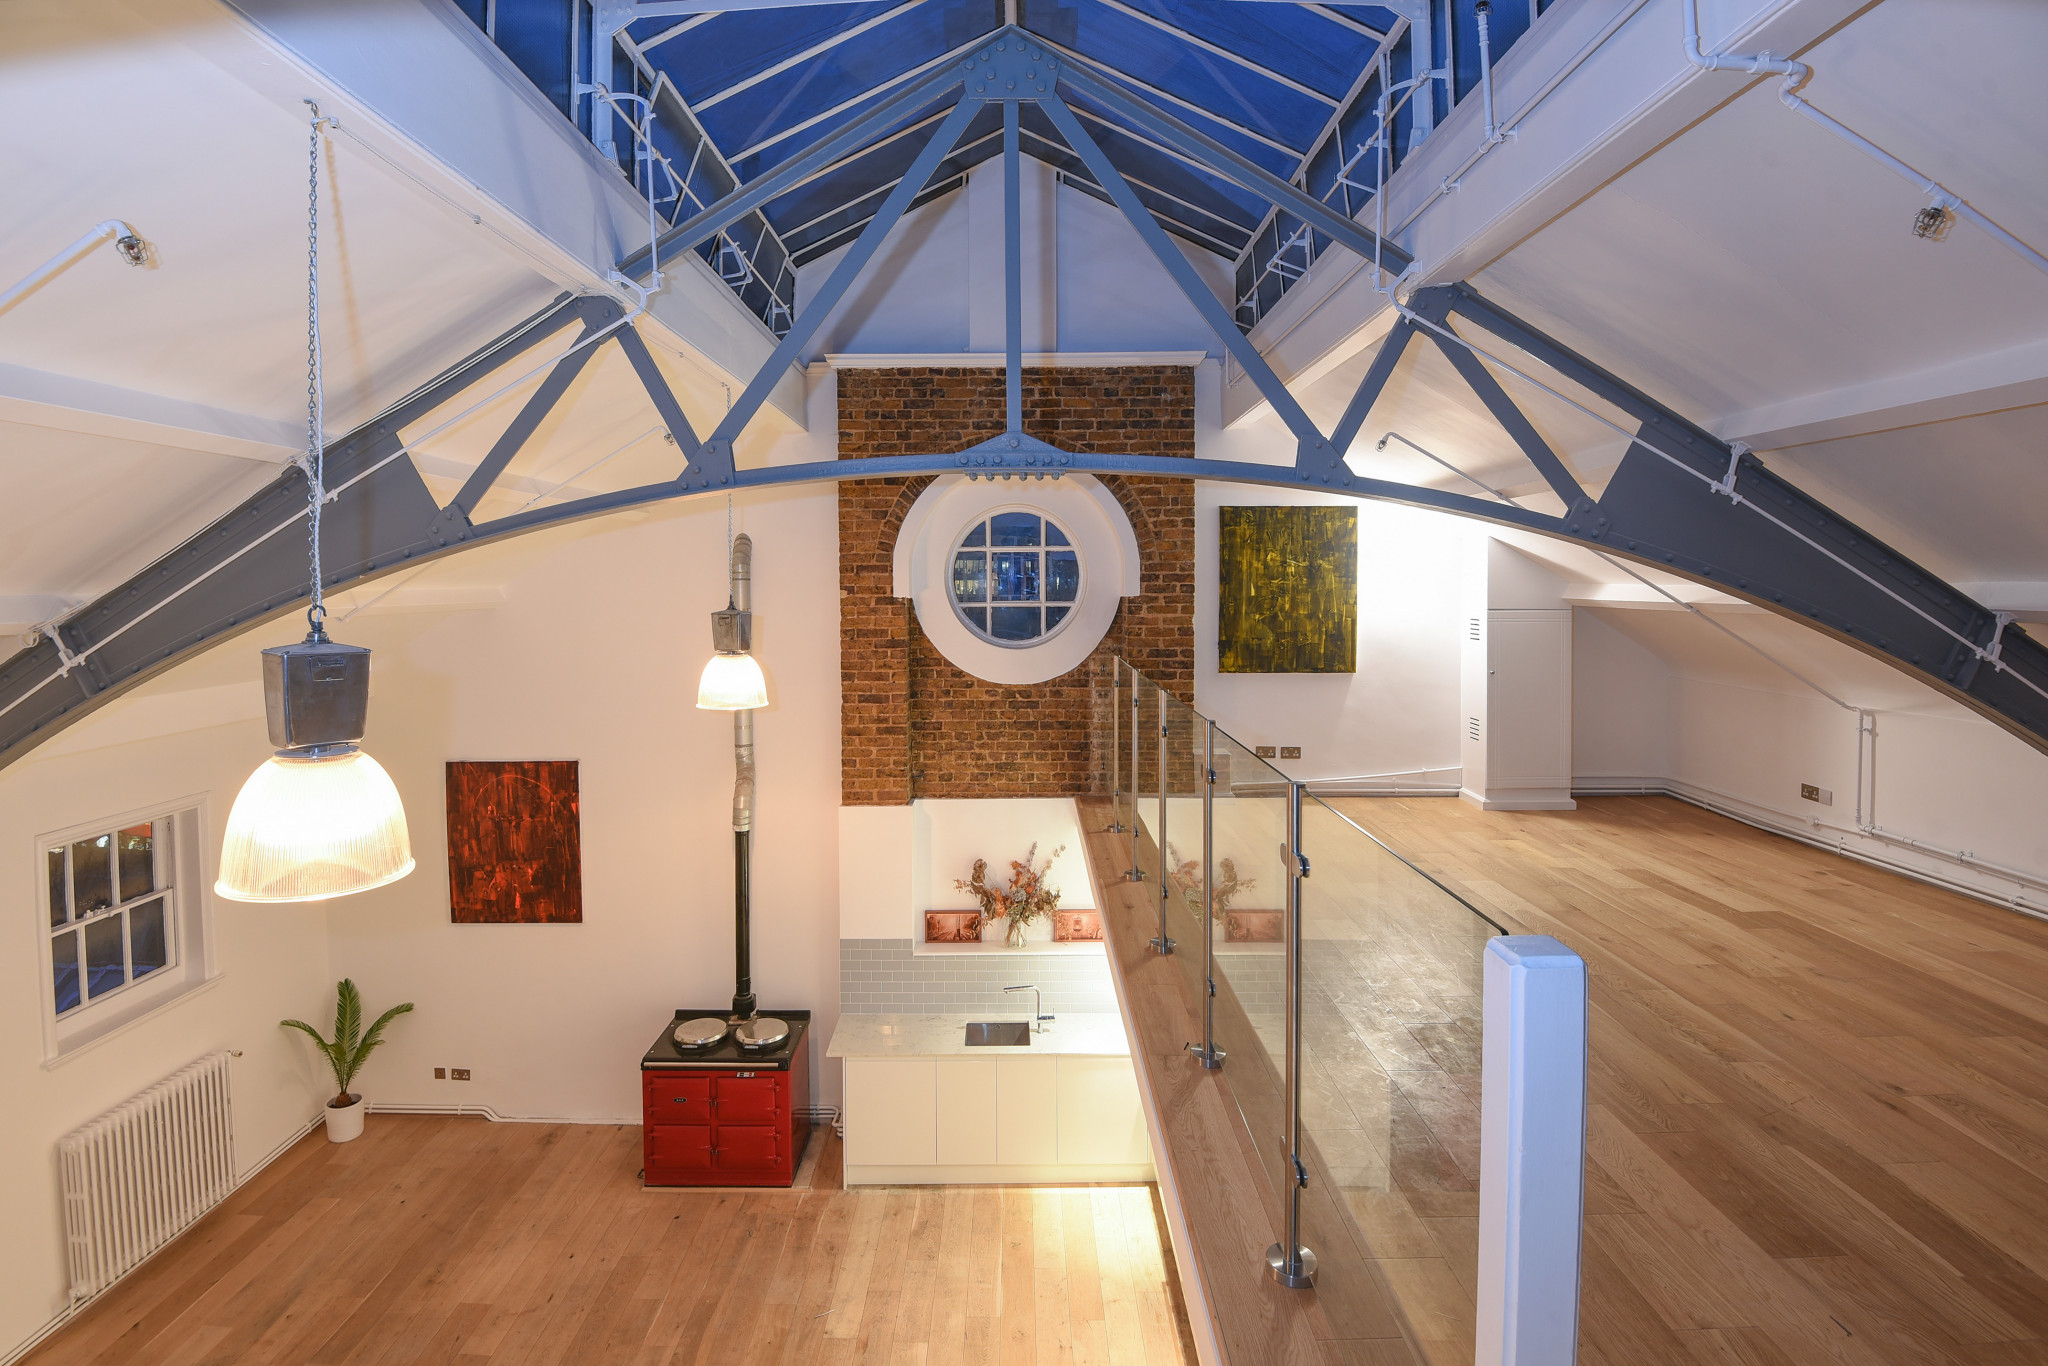 Grand designs projects - homes to renovate and inspire